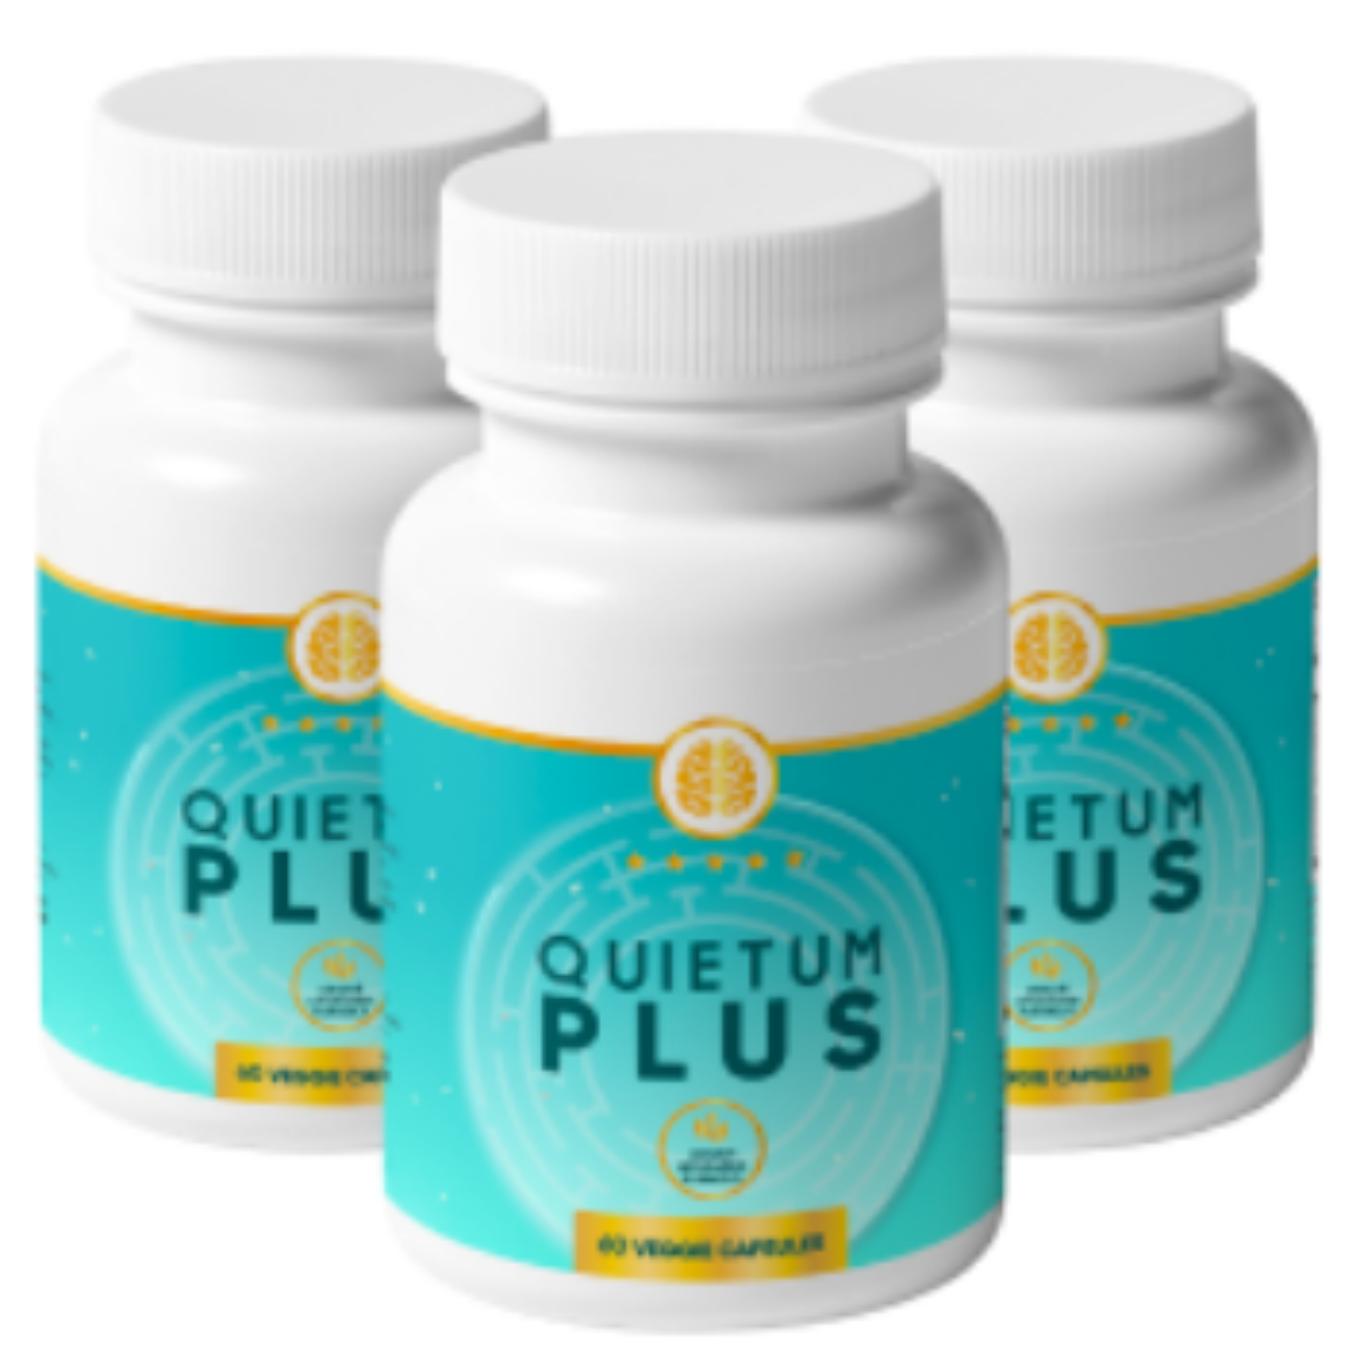 Quietum Plus, A Tested Product For Repairing Auditory Nerves post thumbnail image